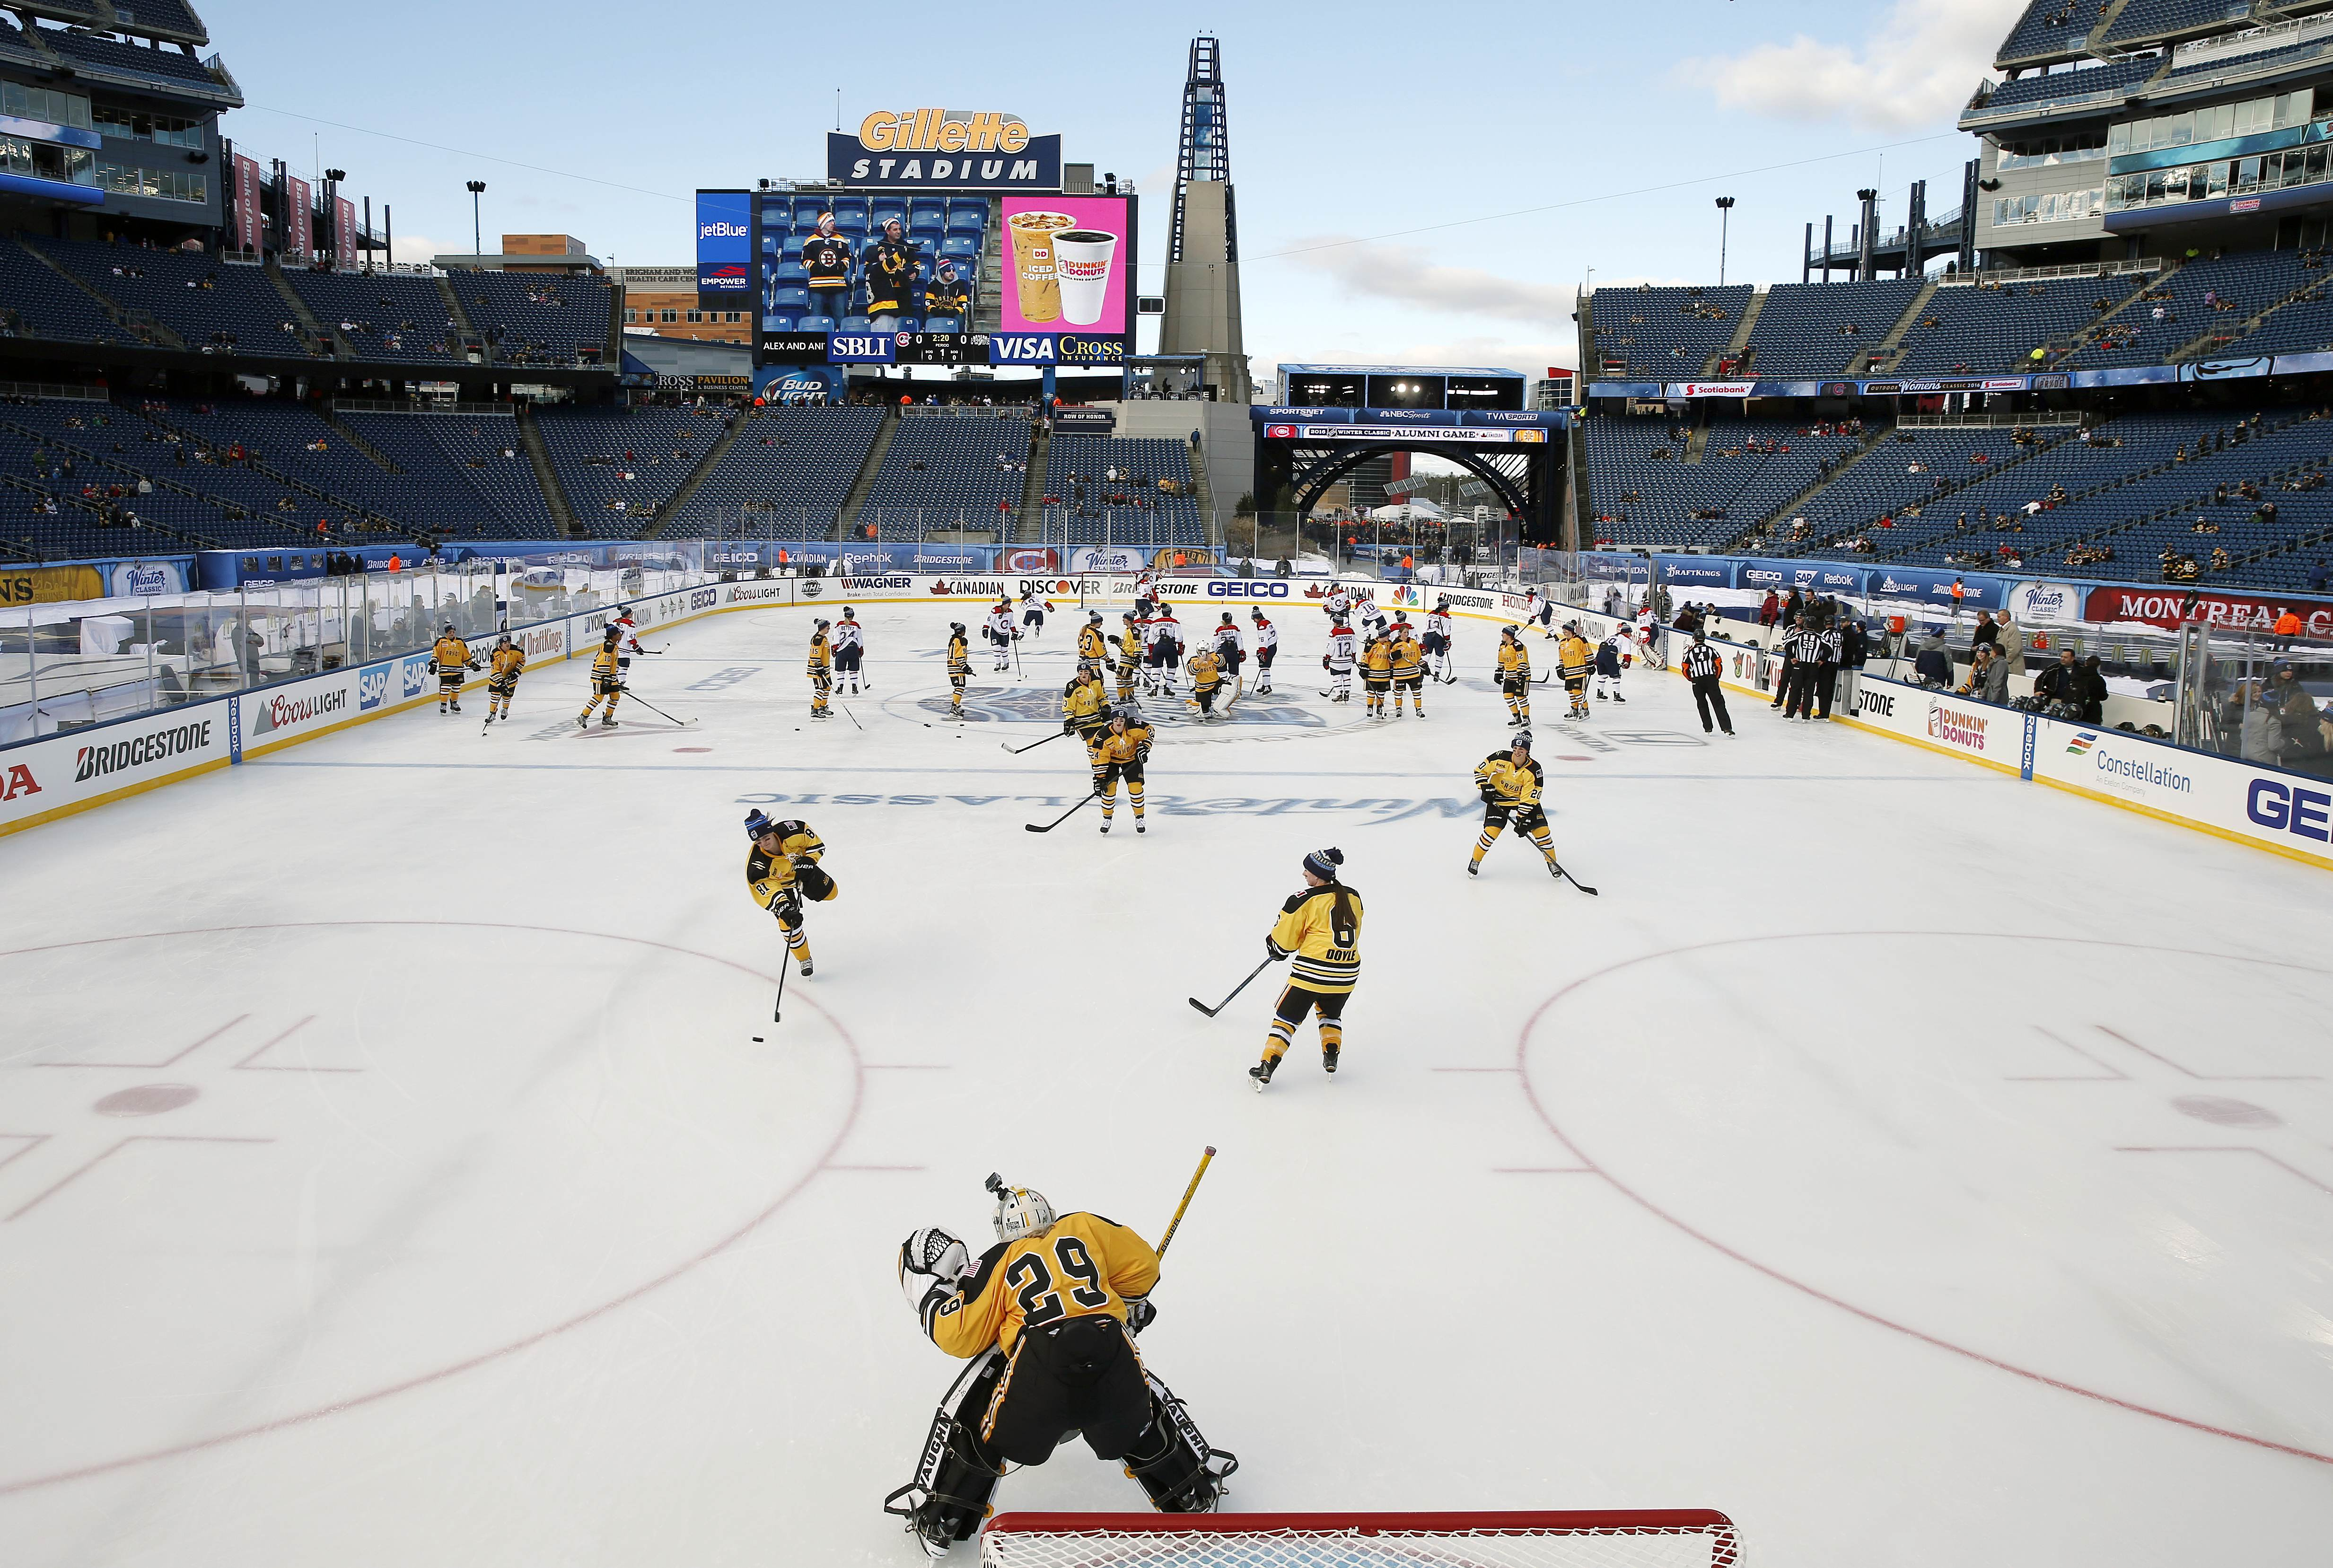 The Boston Pride, foreground, warm up before a women's outdoor hockey game against the Montreal Les Canadiennes at Gillette Stadium in Foxborough, Mass., Thursday, Dec. 31, 2015, where the Boston Bruins will play the Montreal Canadiens in the NHL Winter C